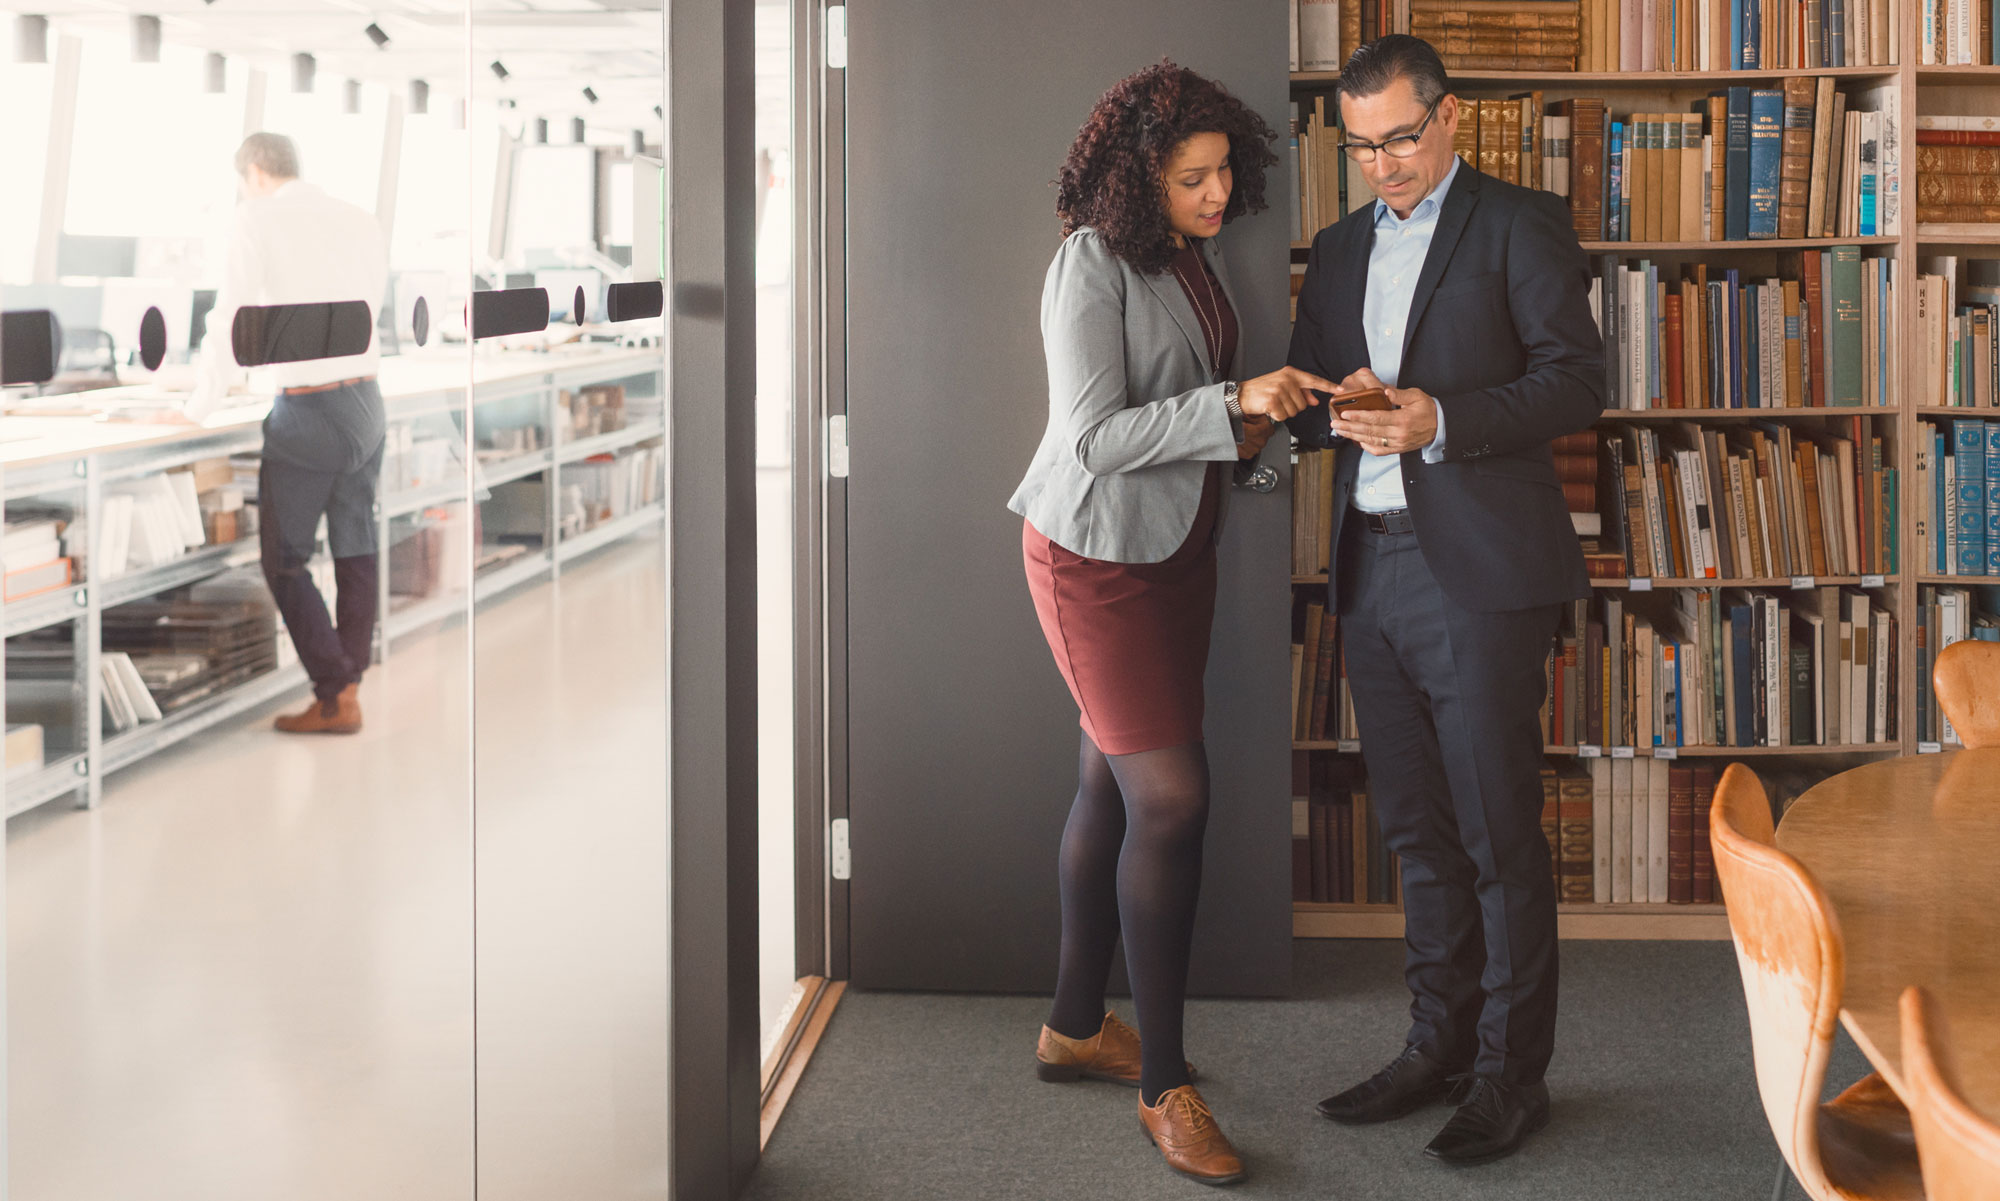 Two business people looking at a mobile in office library.